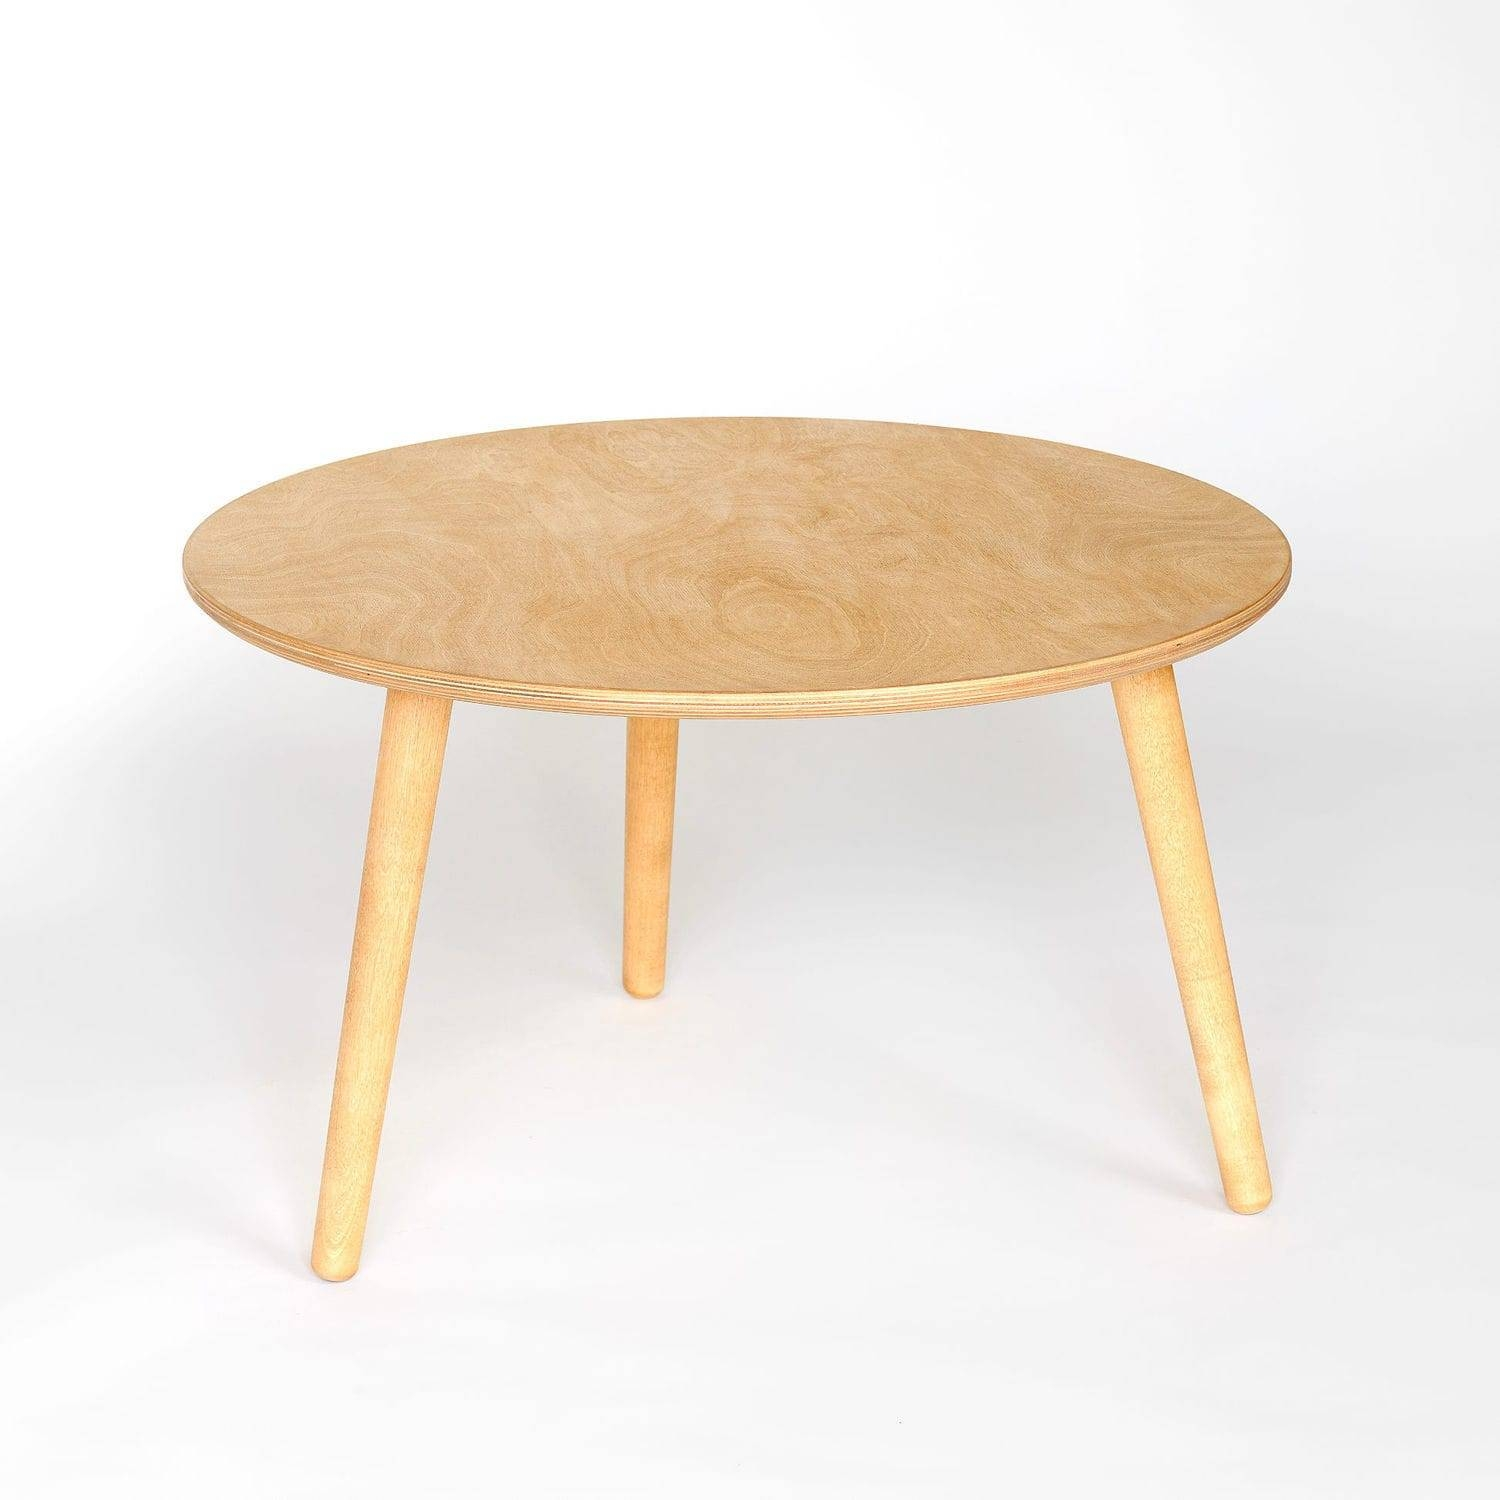 Contemporary Coffee Table / Birch / Plywood / Oiled Wood - Huh intended for Birch Coffee Tables (Image 6 of 30)